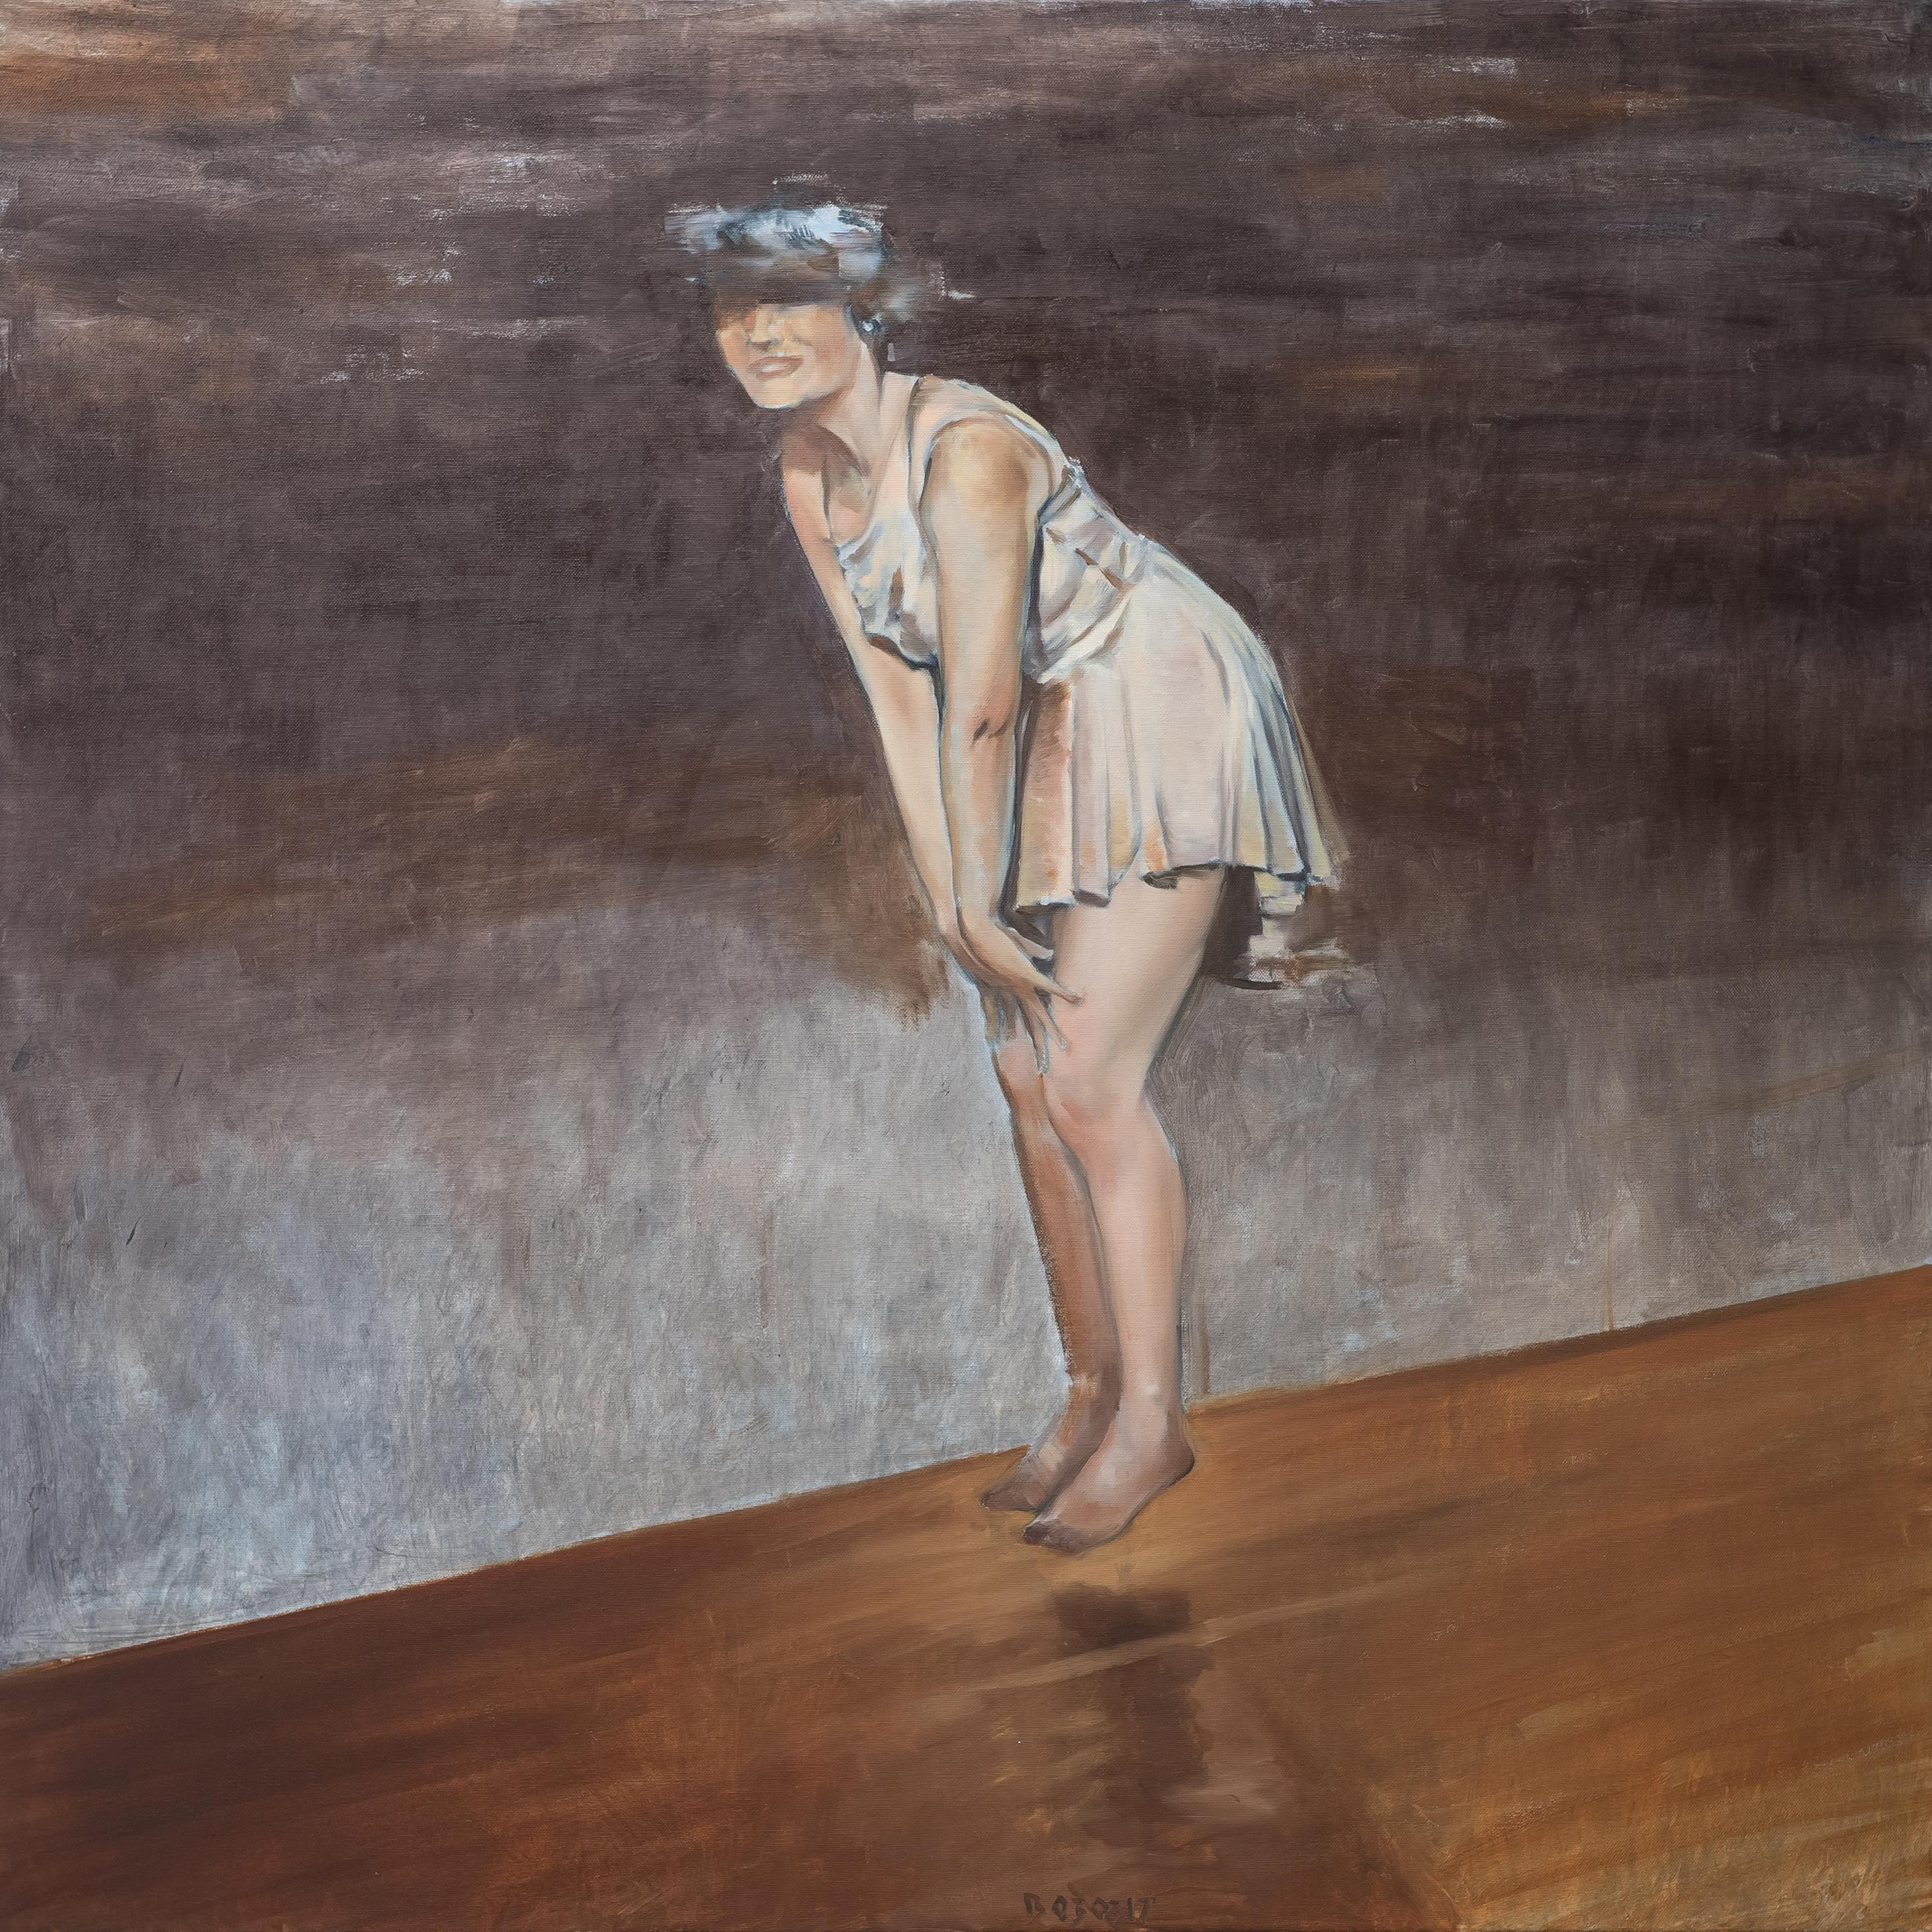 Euphoria -Jumping Woman - Contemporary Figurative Oil Painting, Woman Portrait